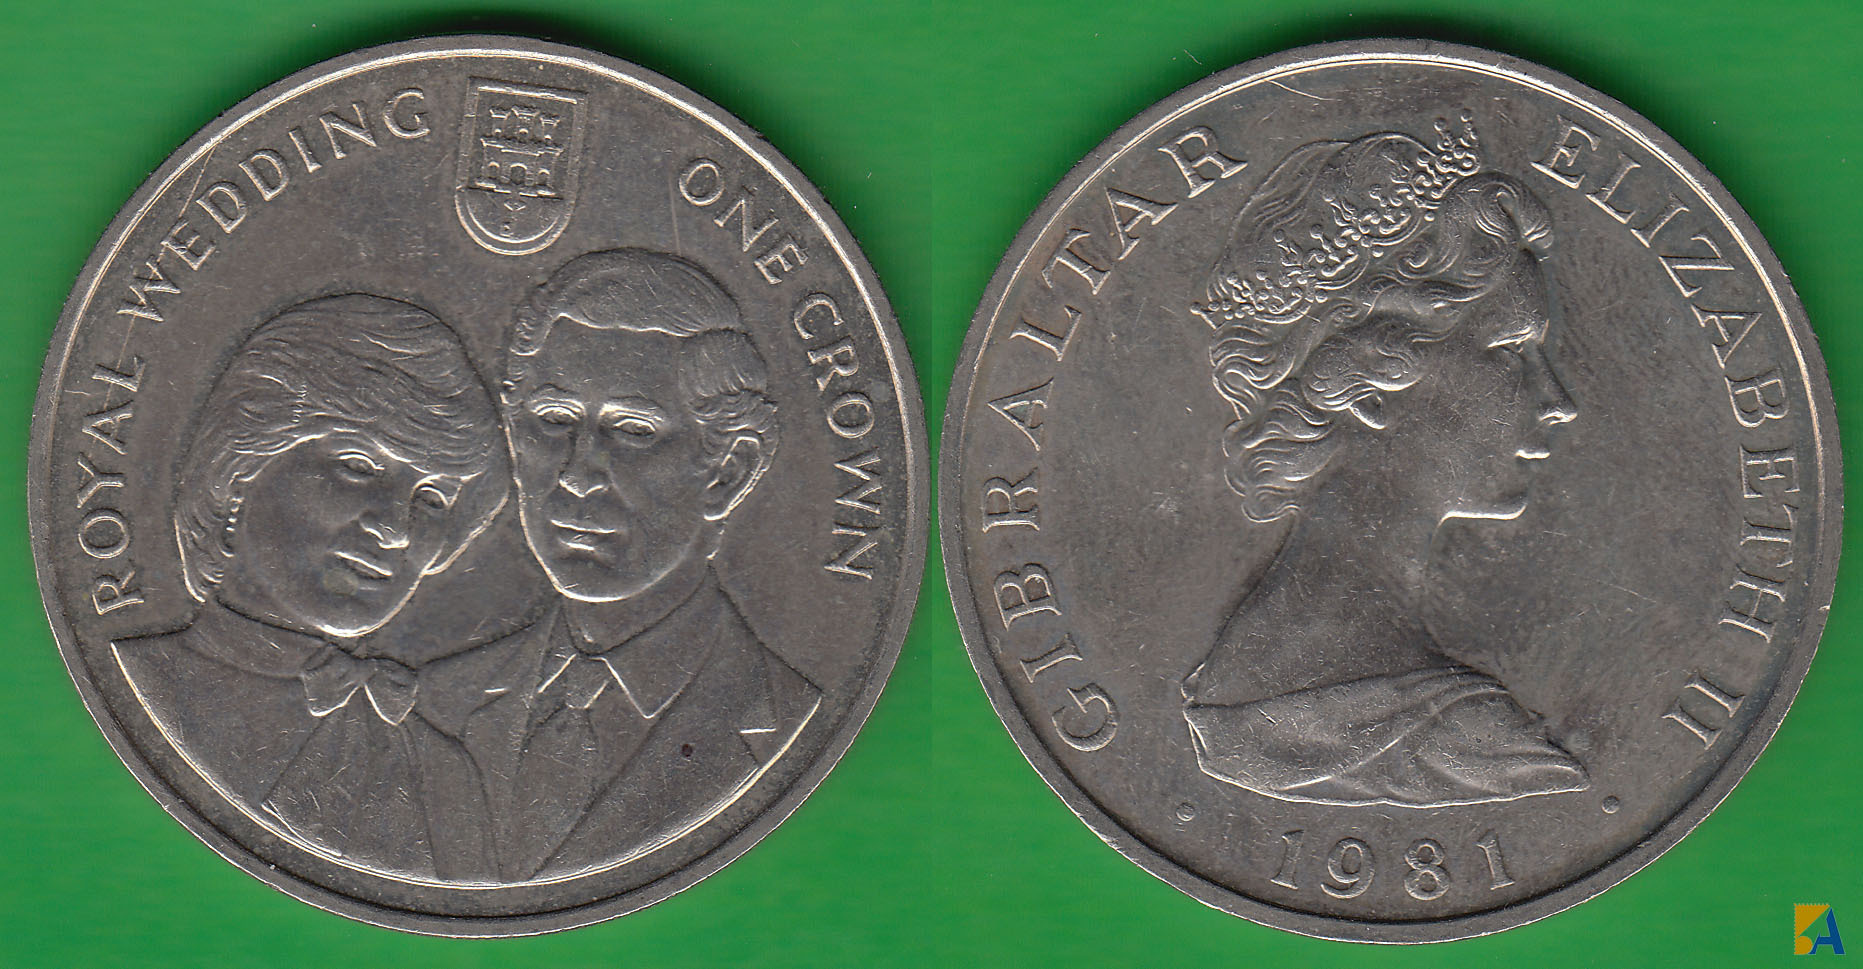 GIBRALTAR. 1 CORONA (CROWN) DE 1981.